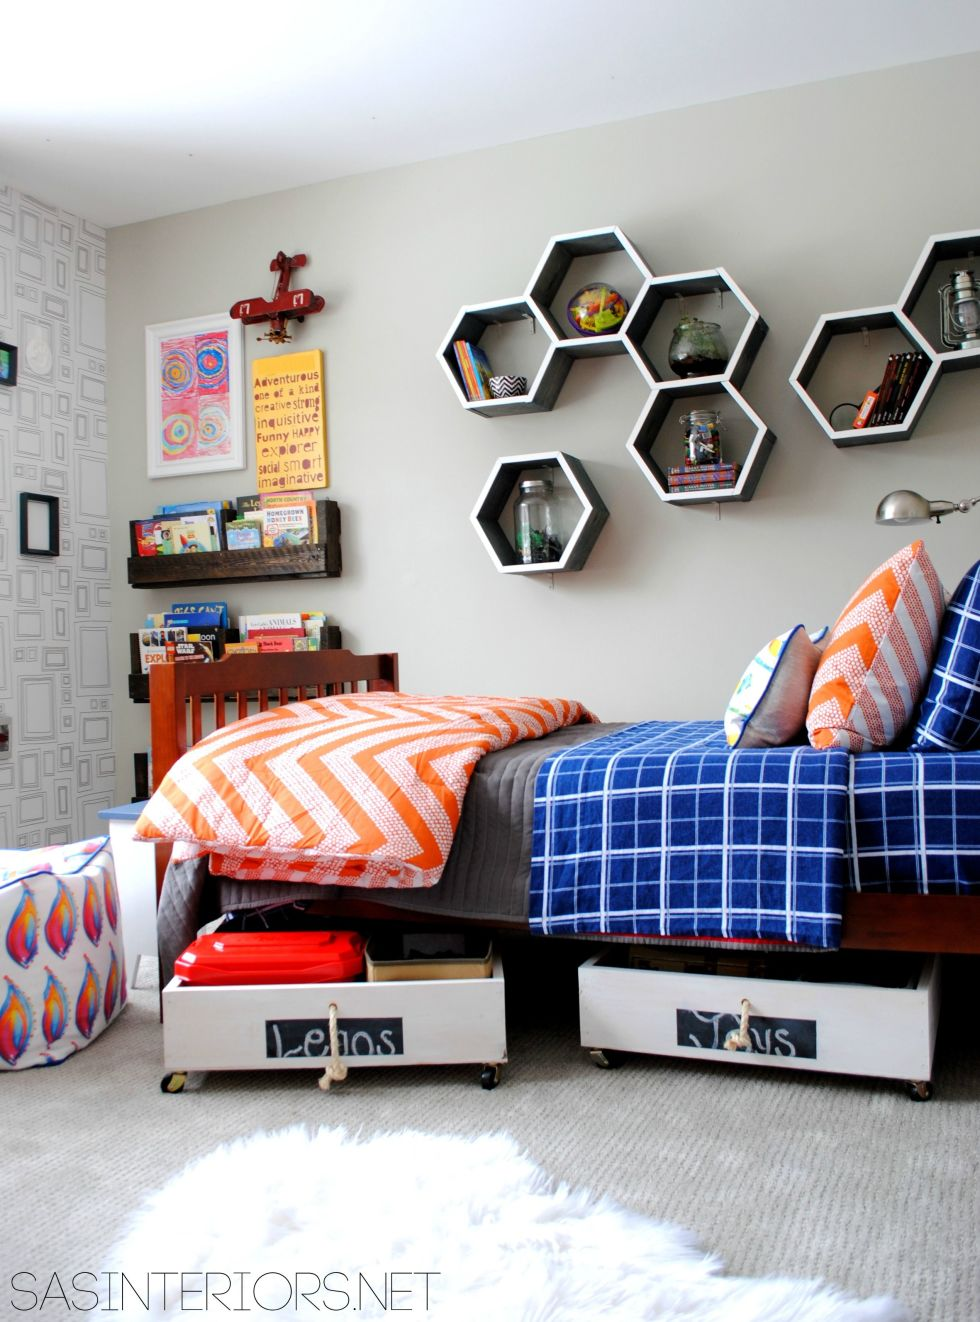 Shelves Childrens Bedroom 10 Genius Storage Ideas For Your Kids Room